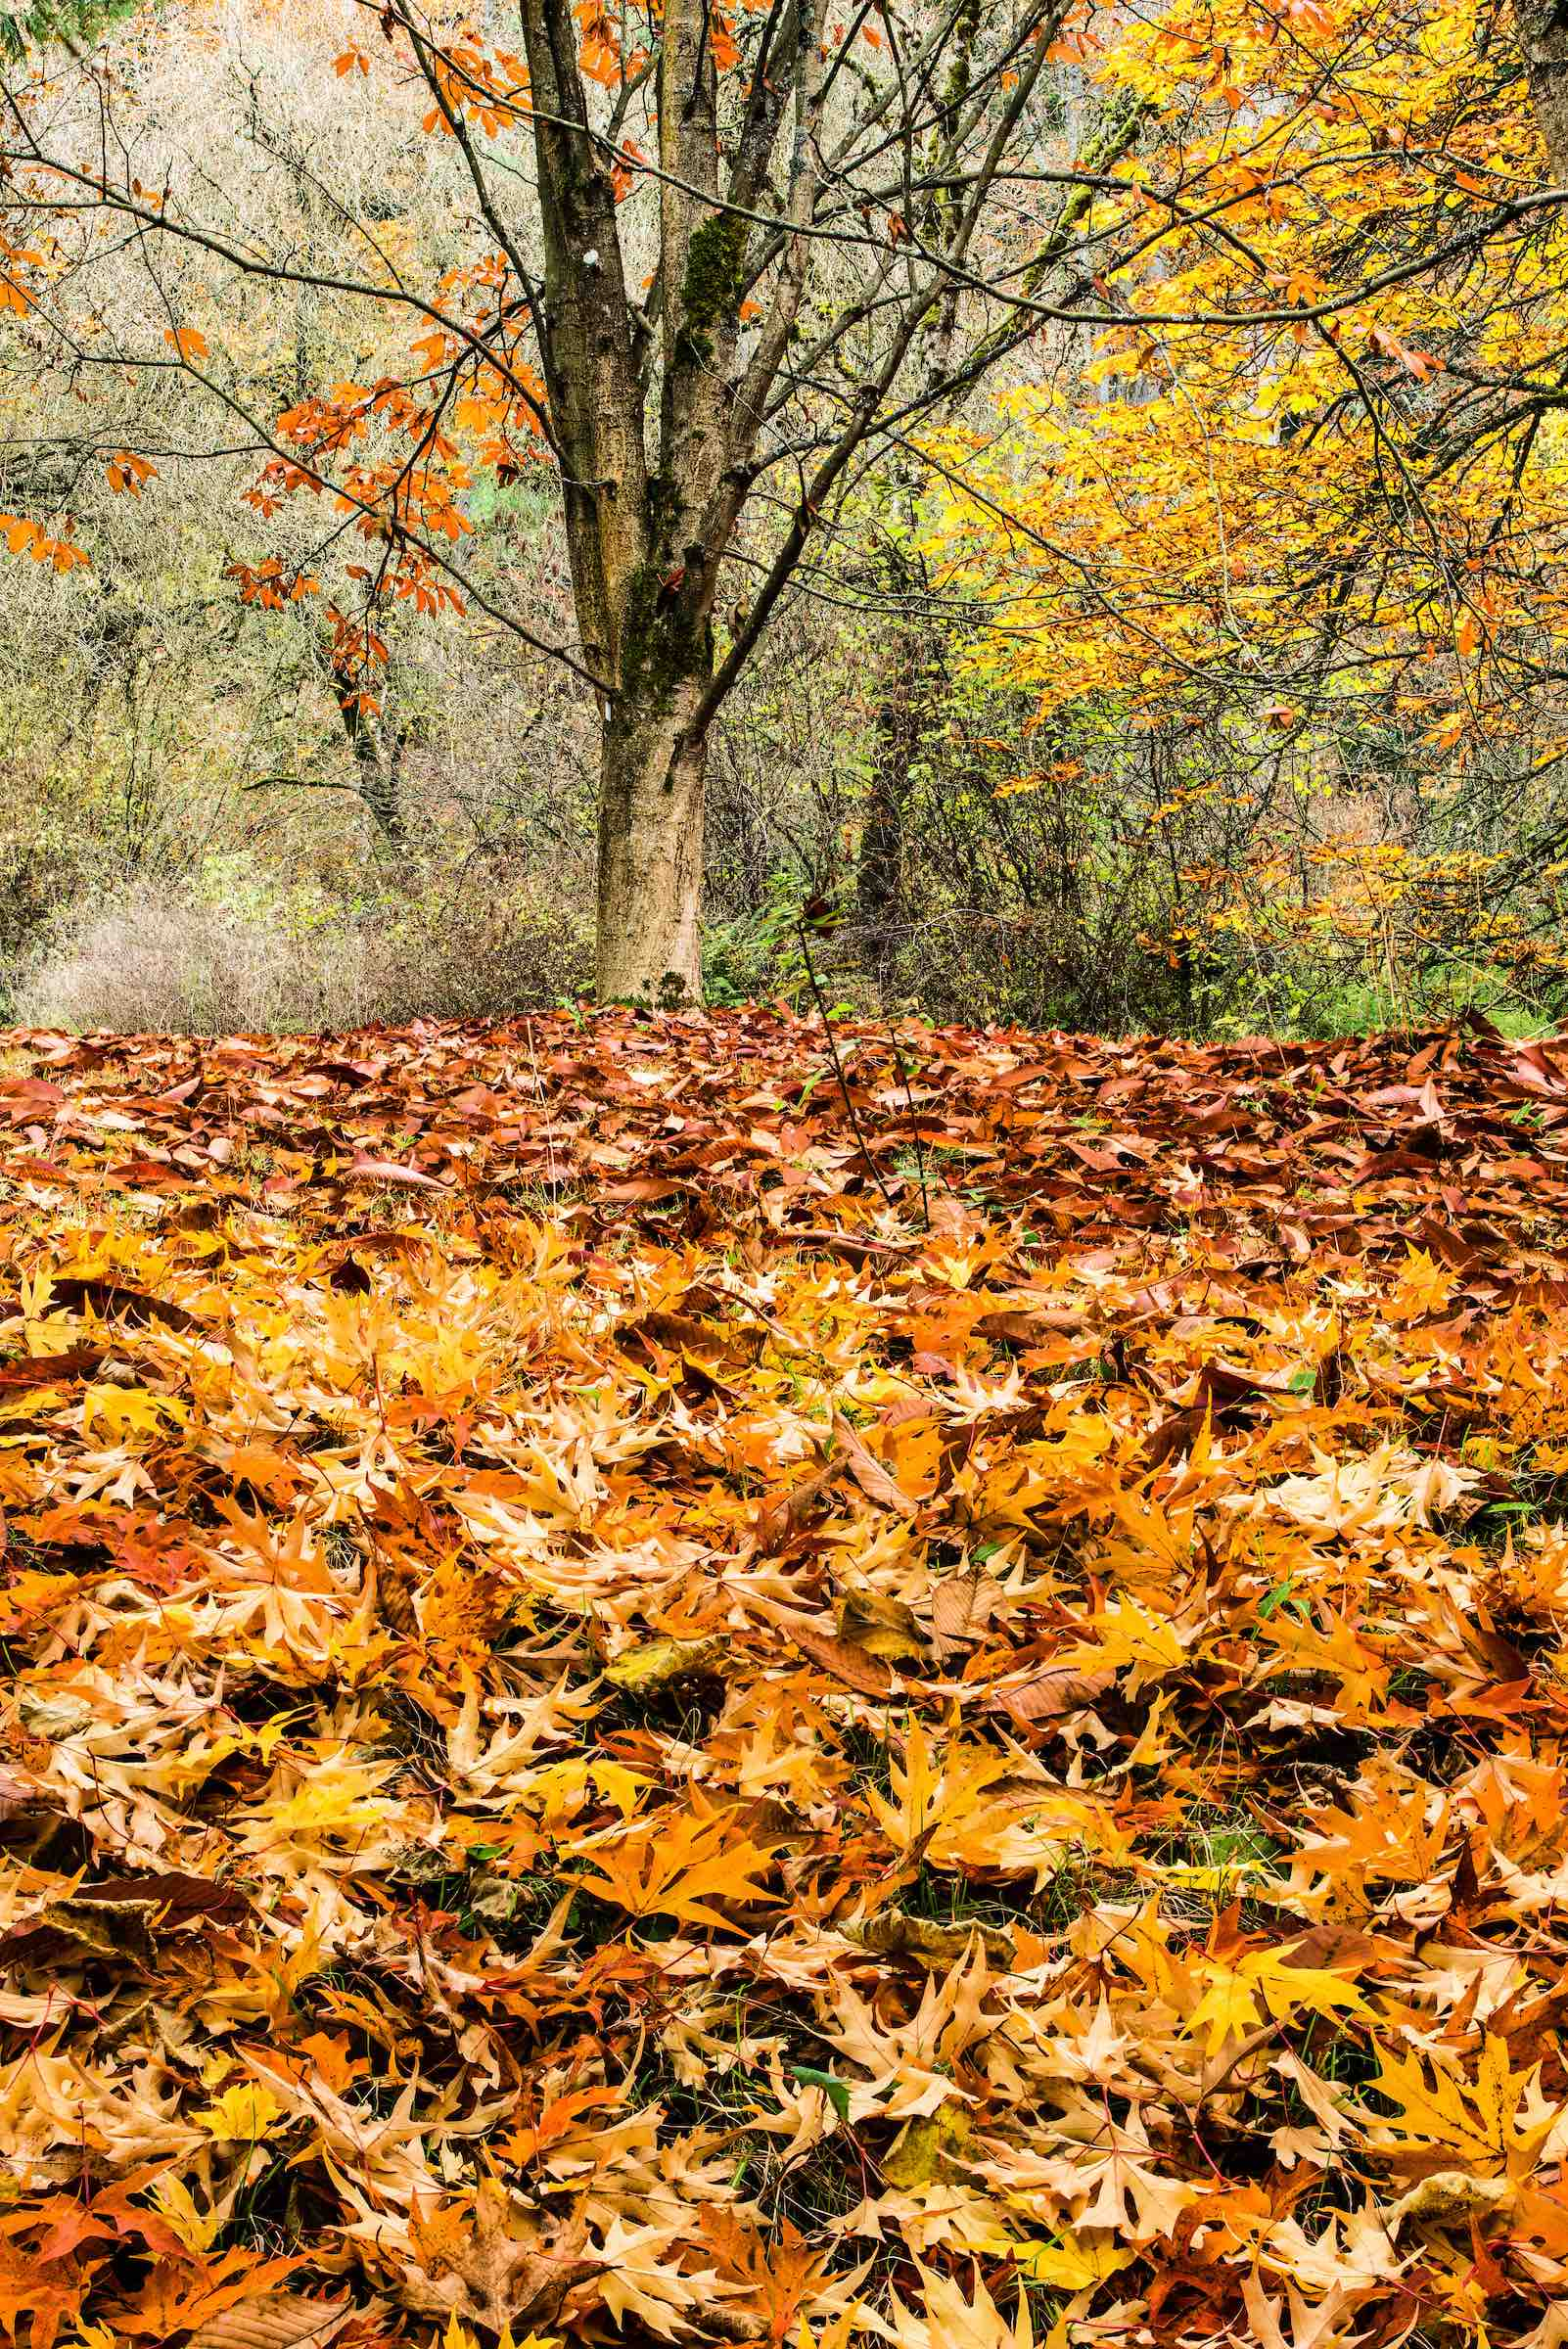 BUCKEYE TREE AND MAPLE LEAVES. © GIVEN PHOTOGRAPHY